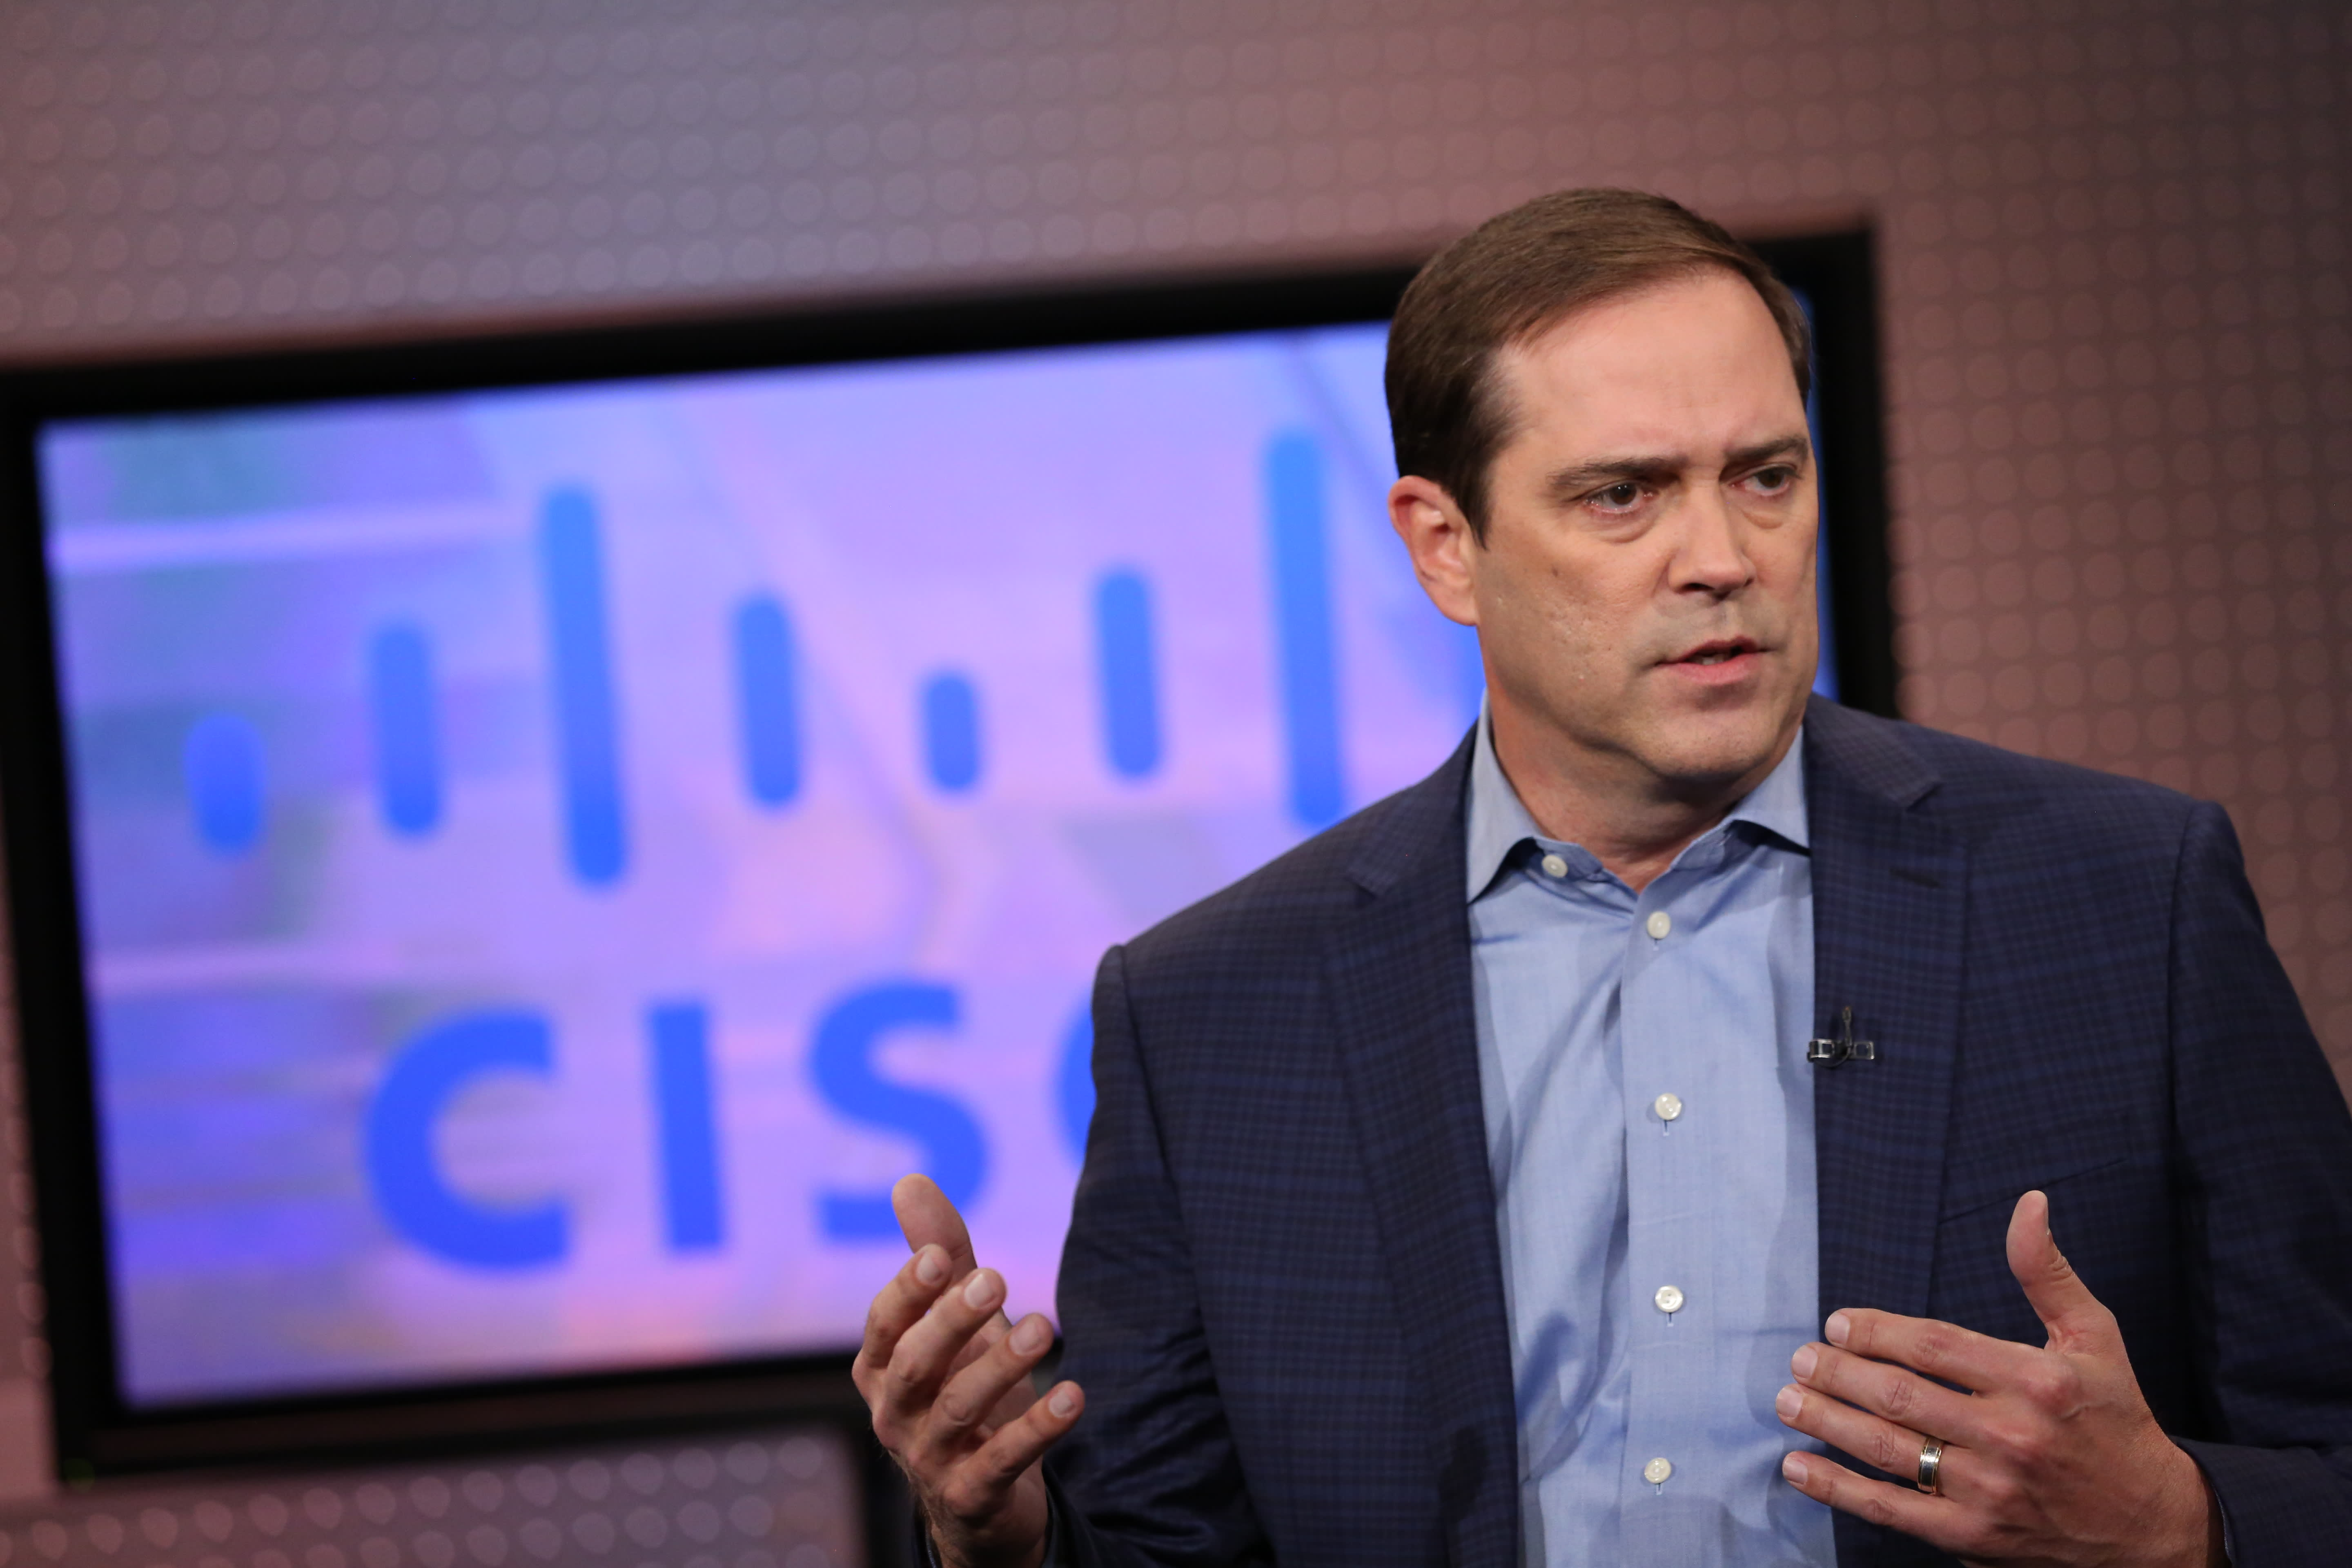 Stocks making the biggest moves after hours: Cisco, NetApp and Vipshop